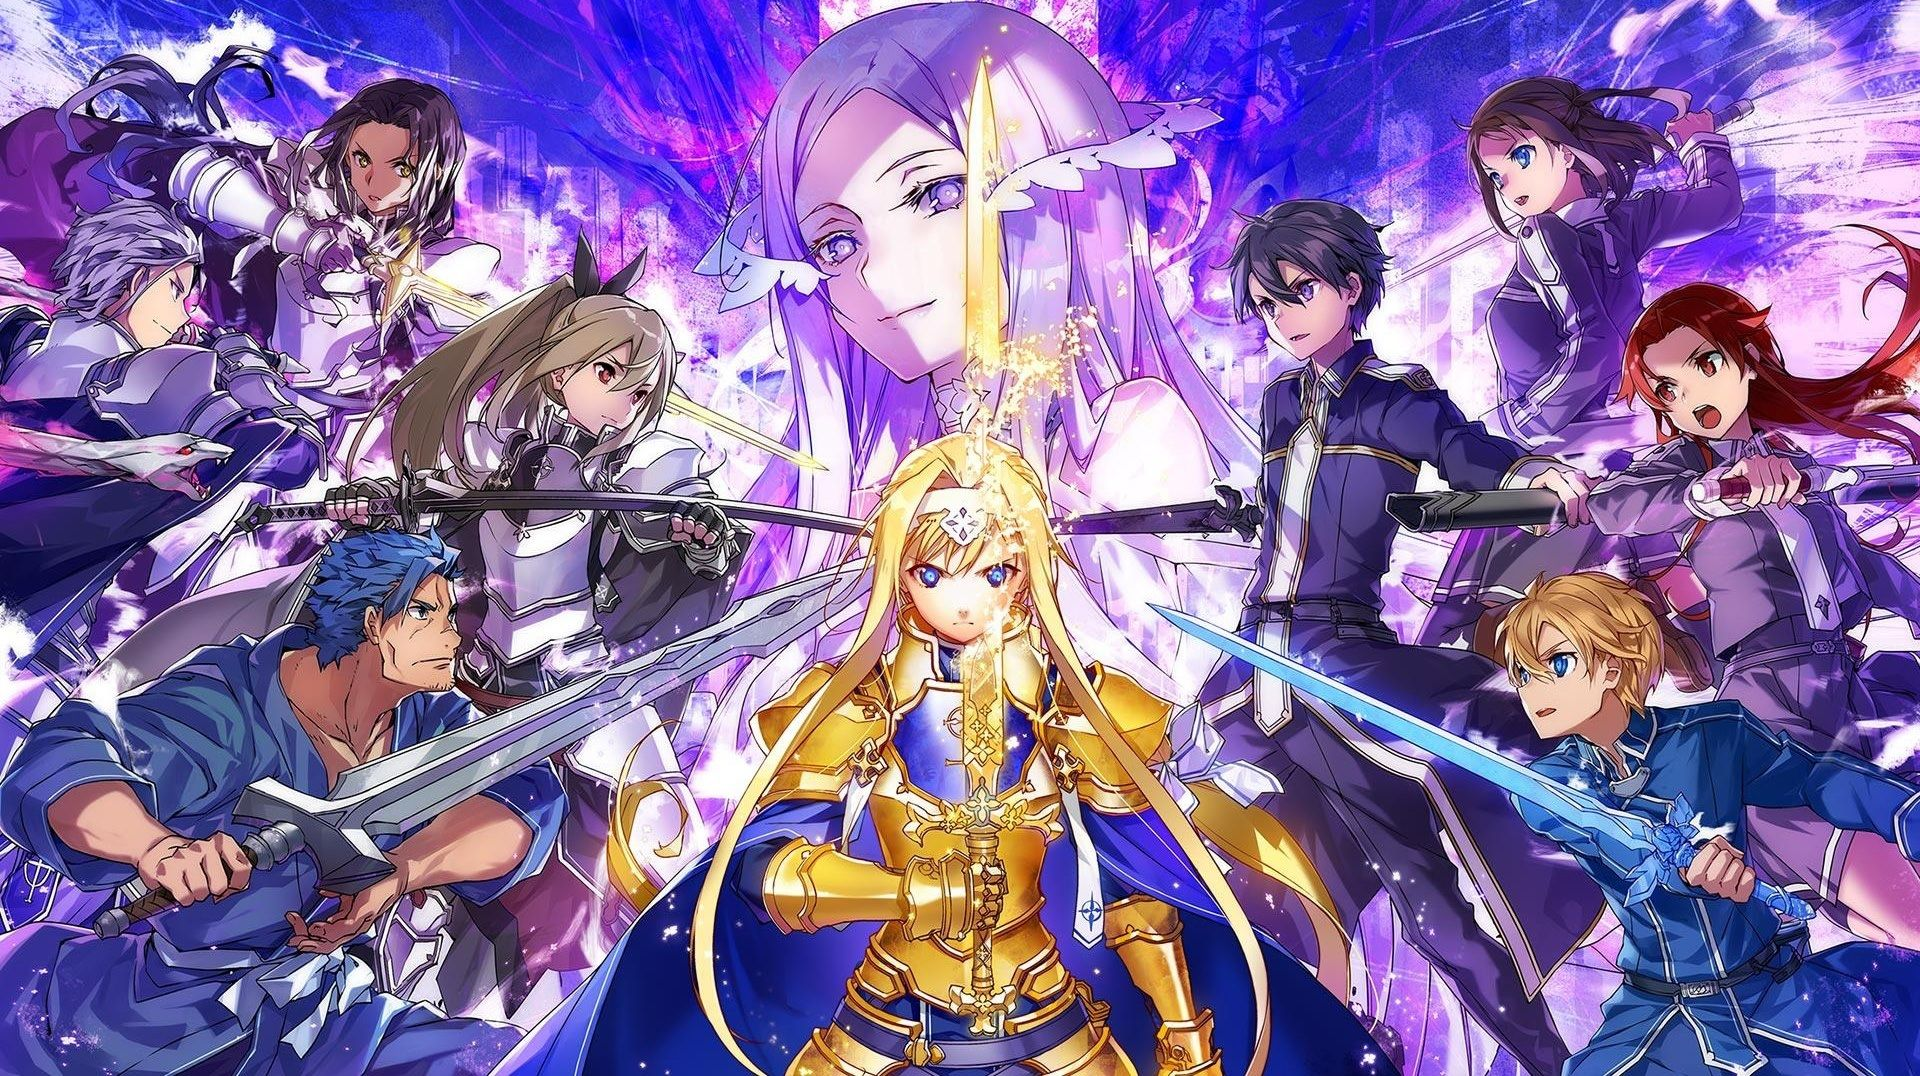 Sword Art Online Alicization which is a pretty confusing